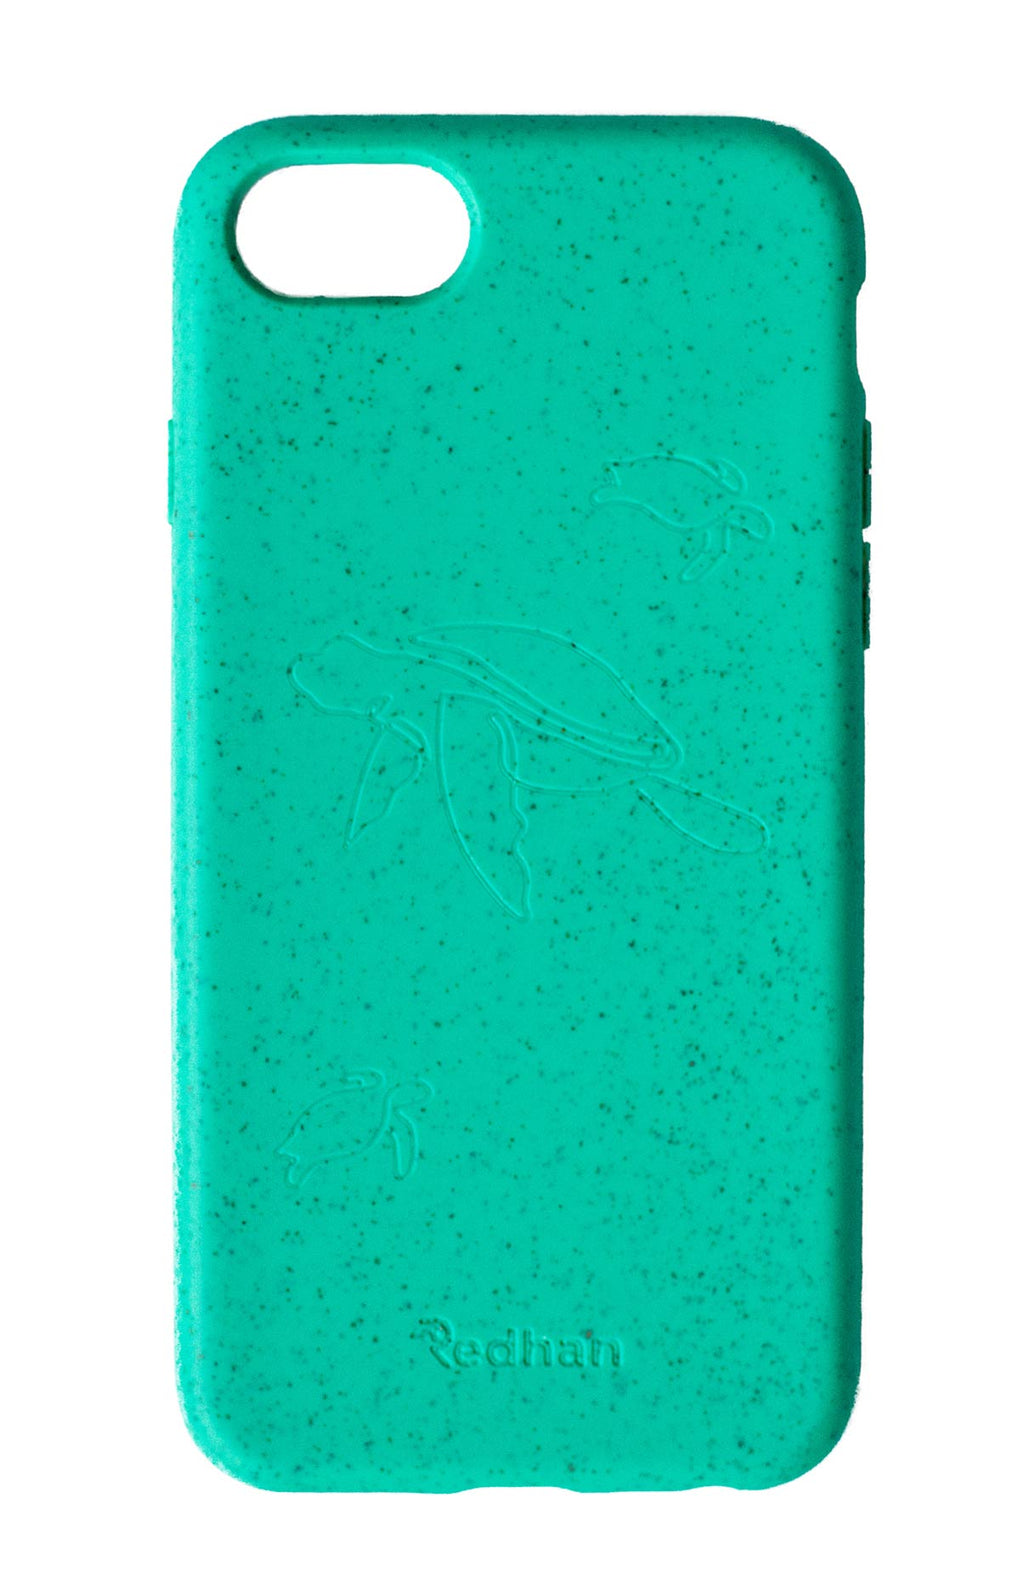 Turtle in Turquoise - iPhone 6/6S/7/8/SE (2nd Gen)